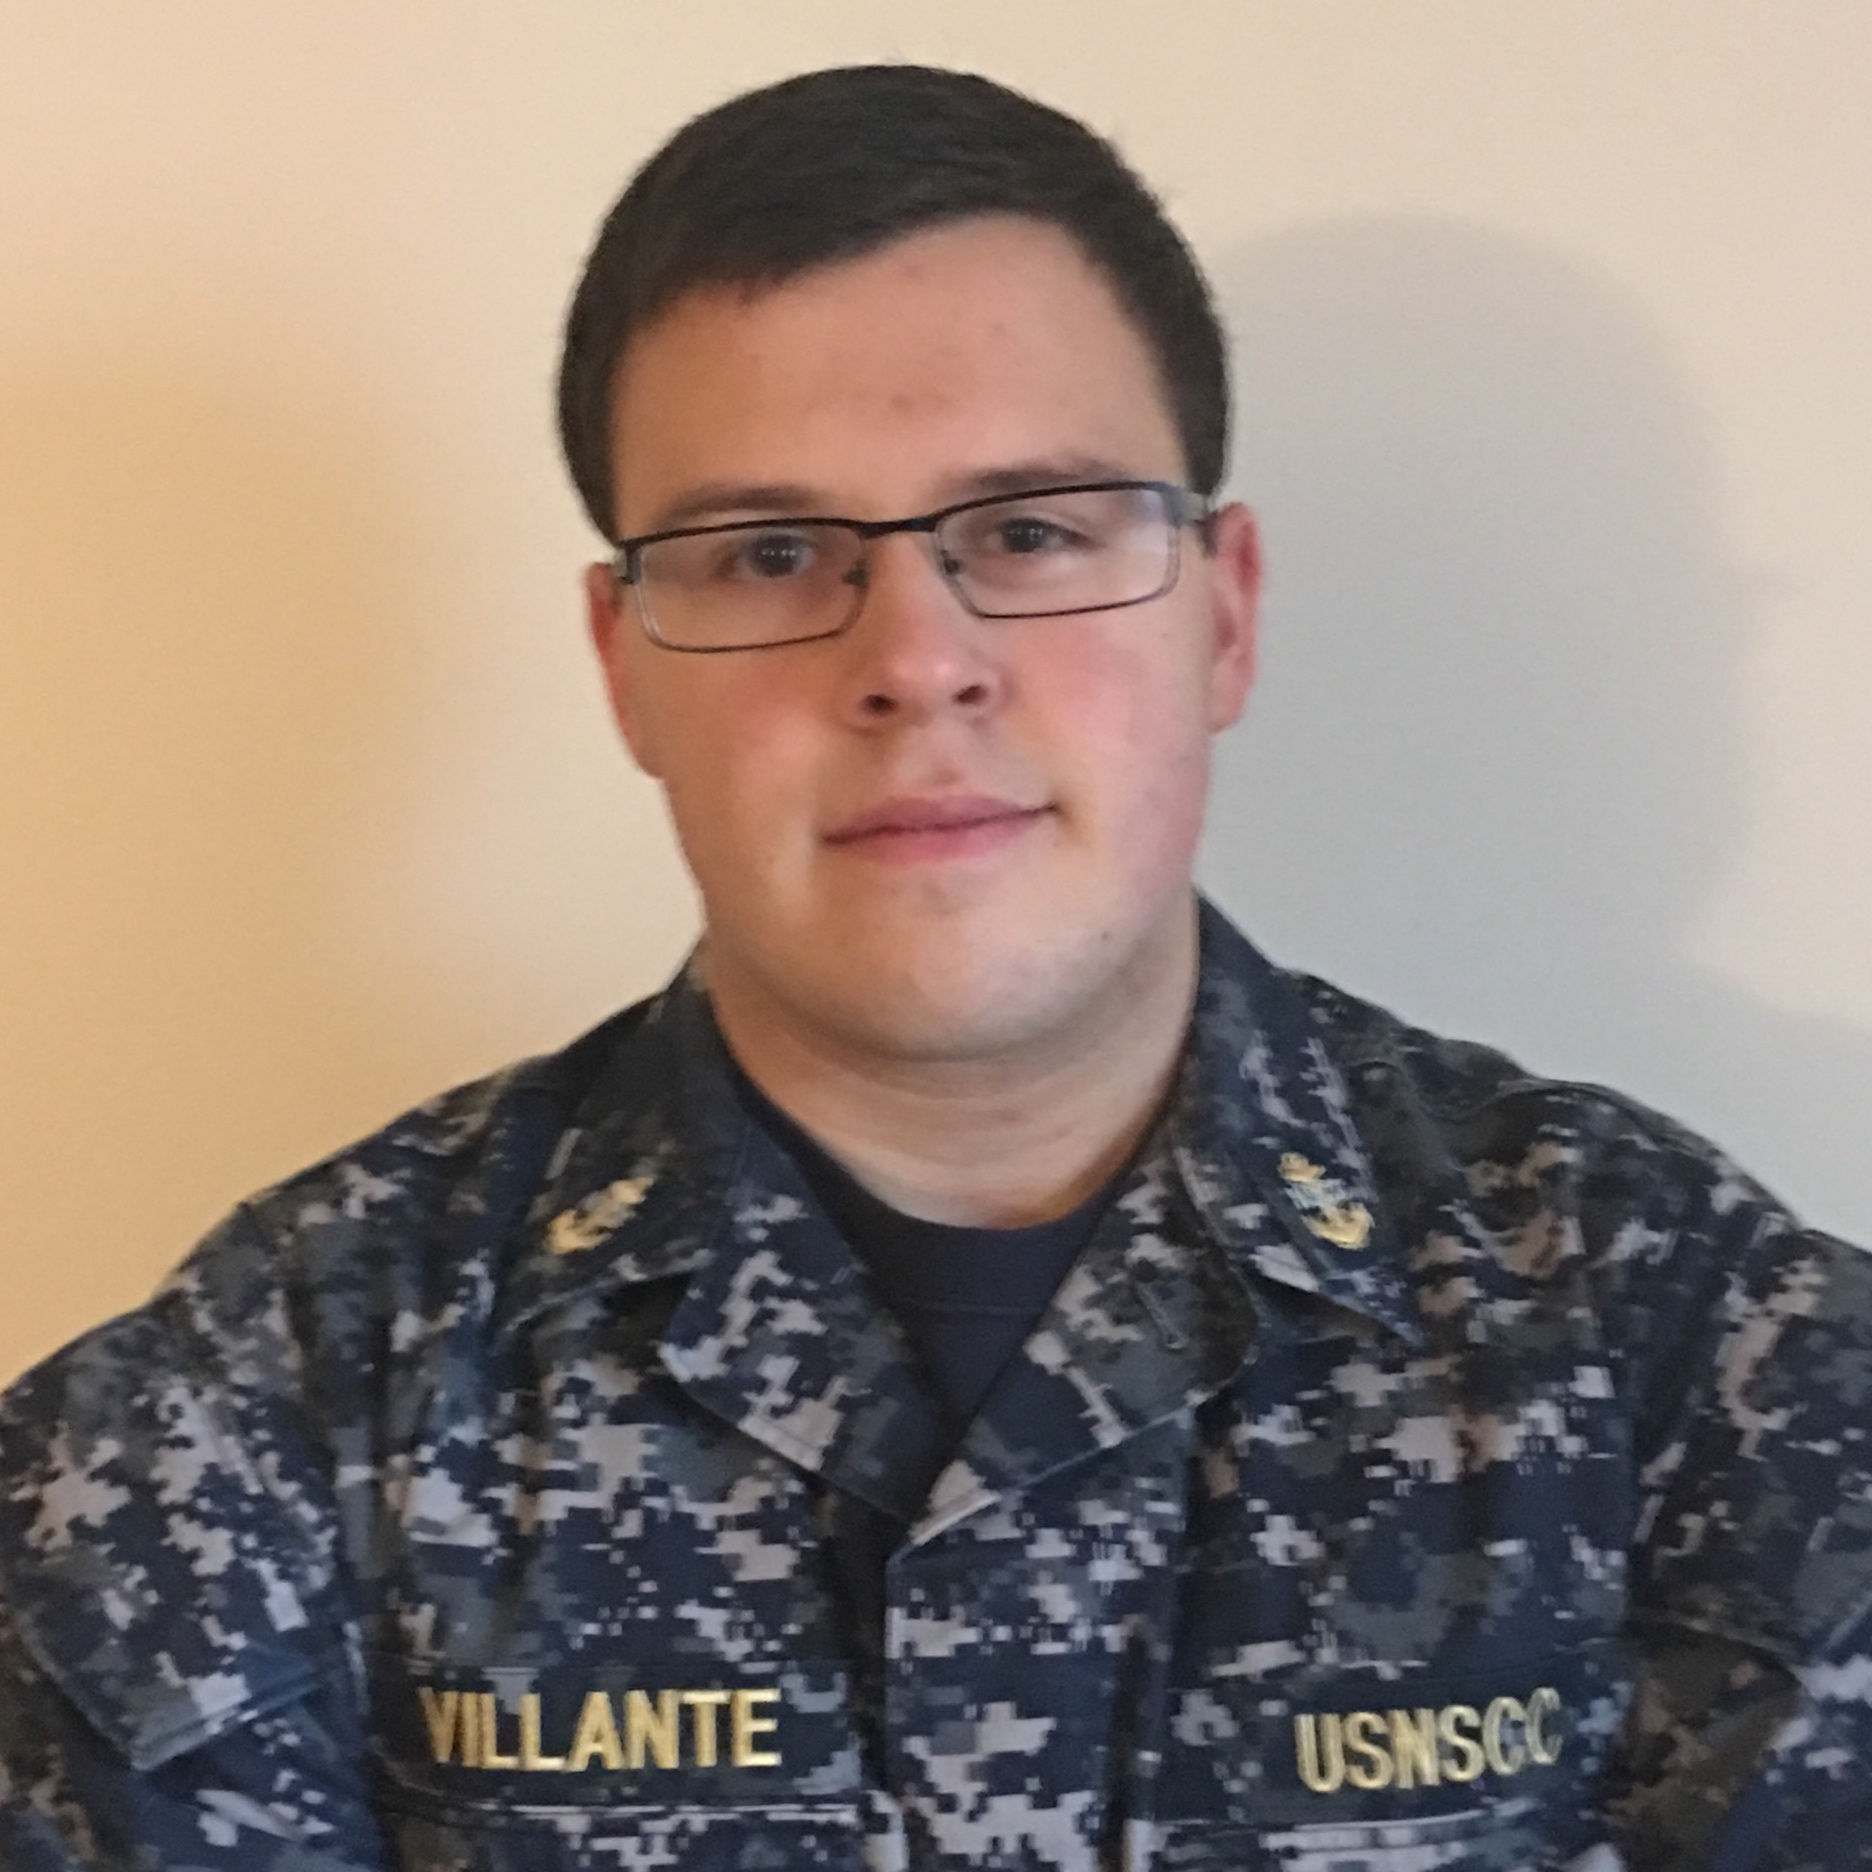 CPO Anthony Villante